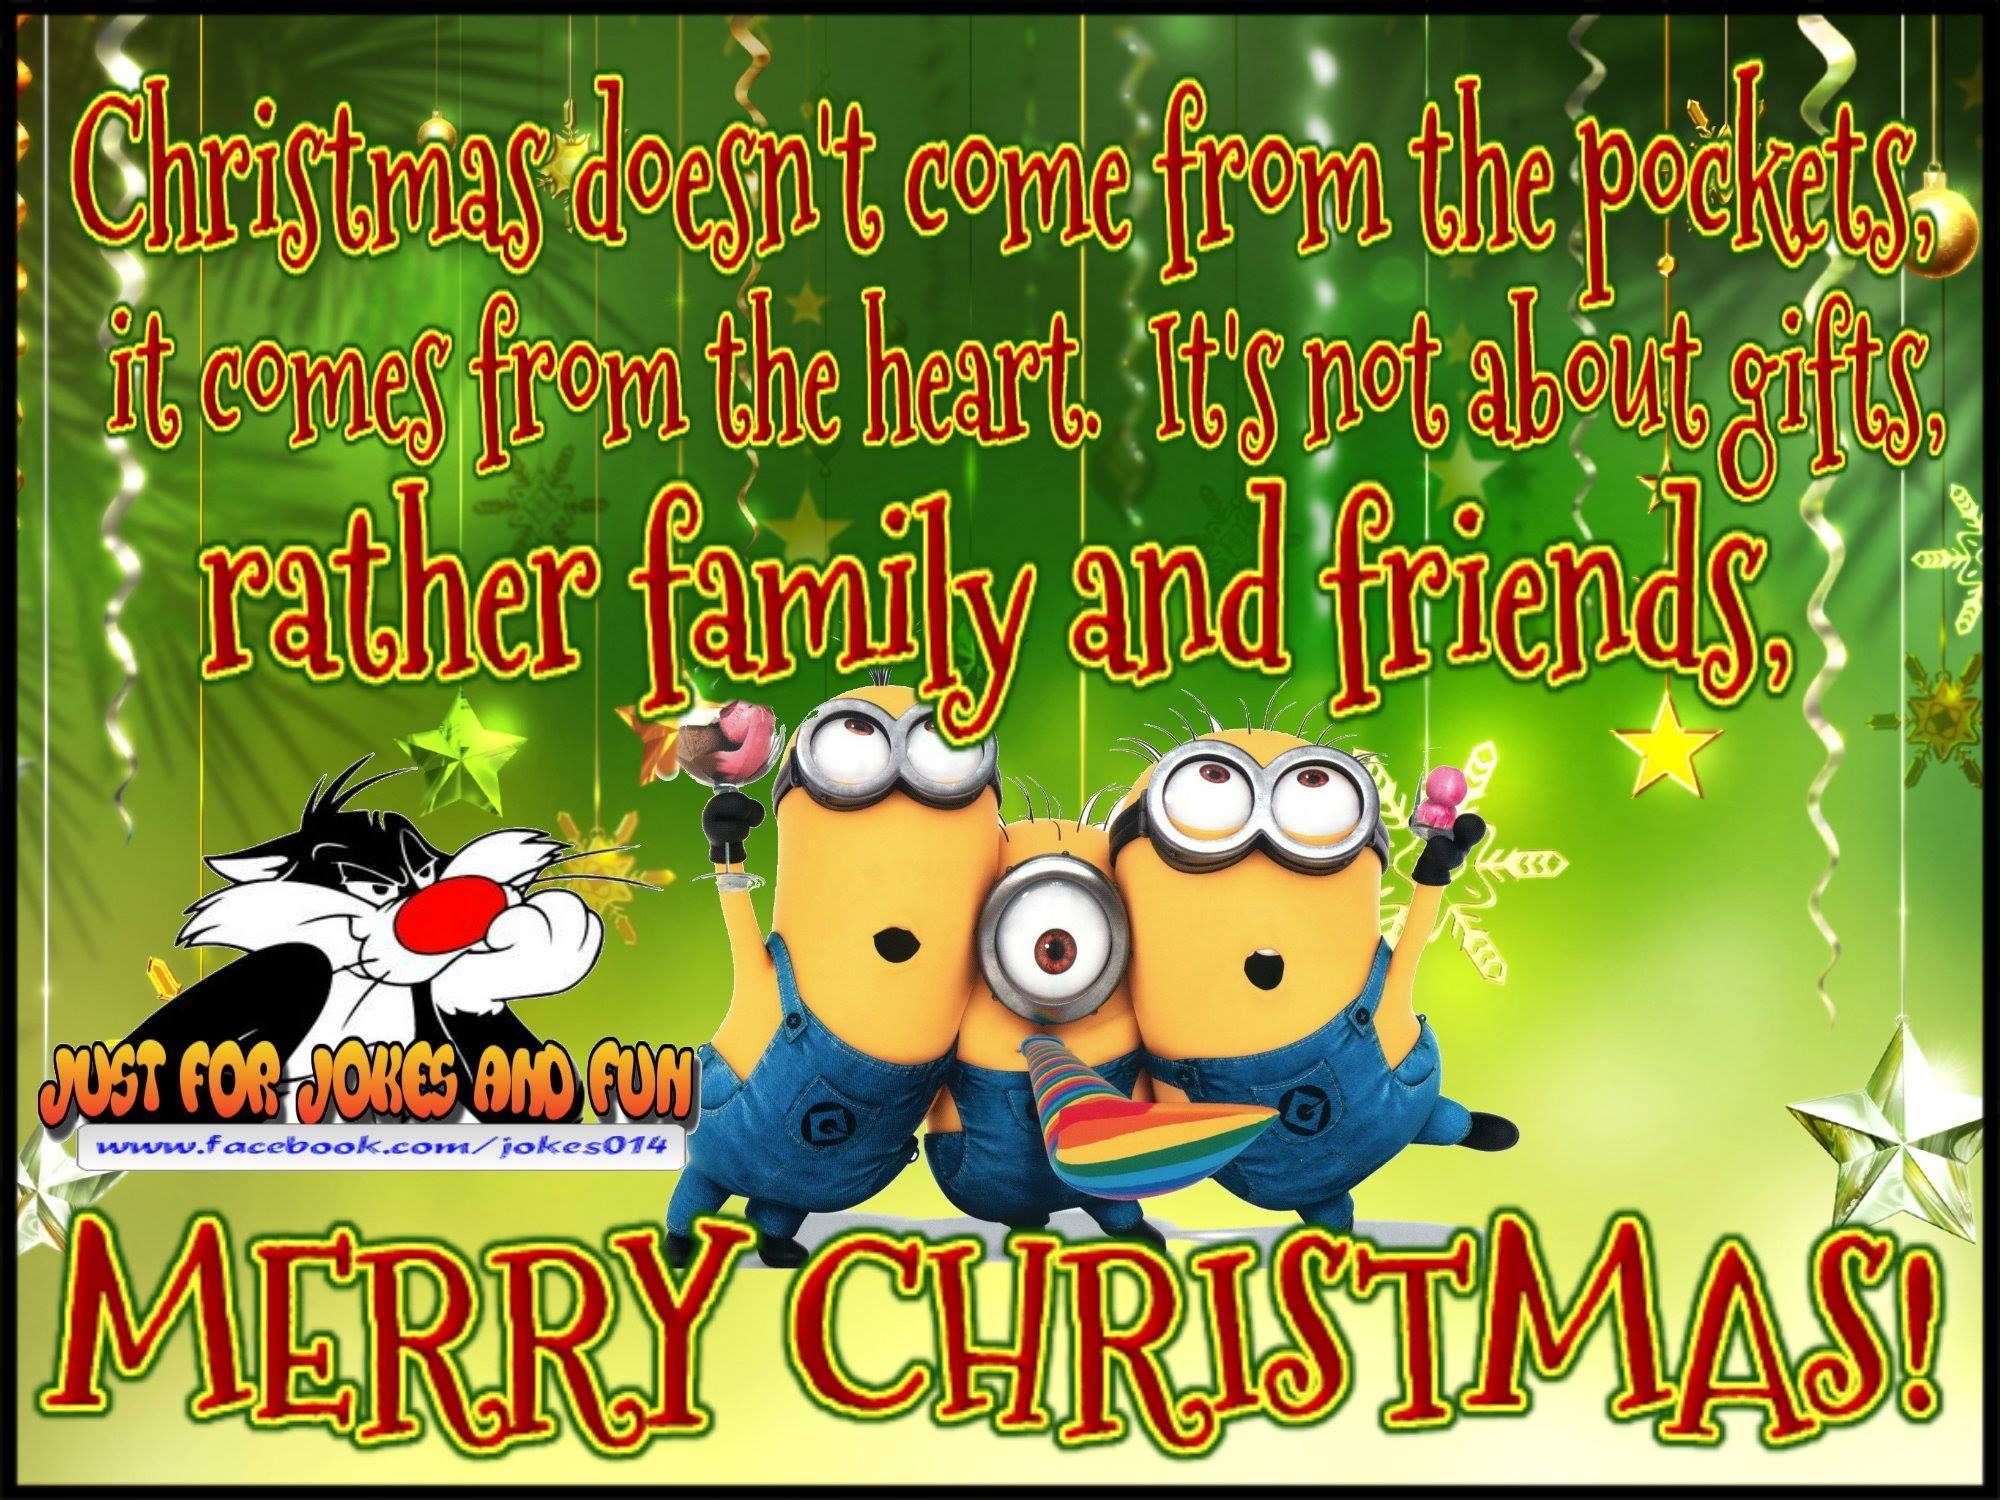 merry christmas minion quote for family and friends - Minion Merry Christmas